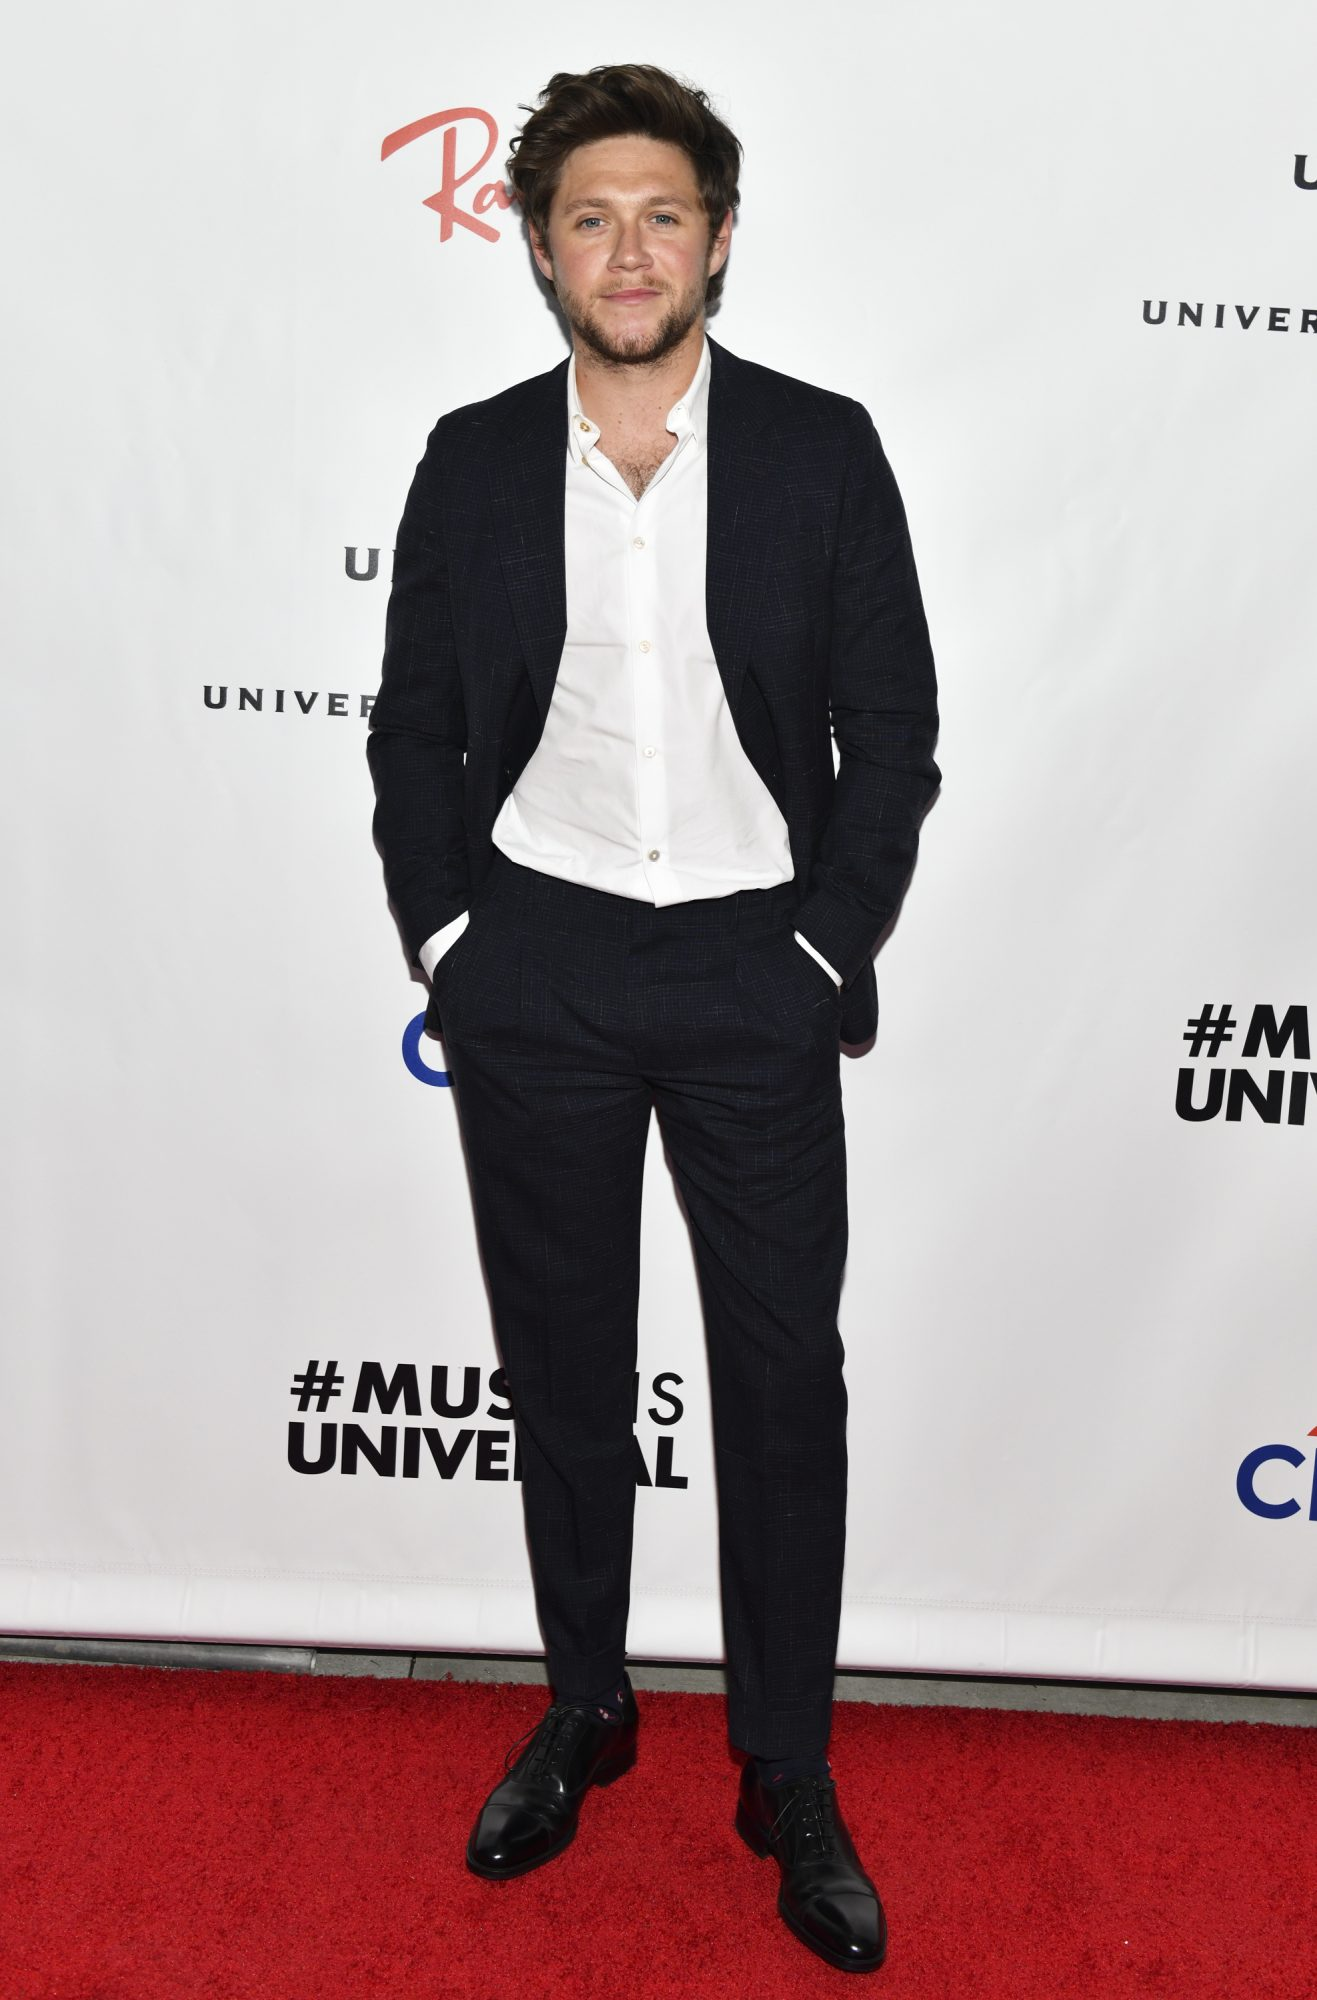 LOS ANGELES, CALIFORNIA - FEBRUARY 10: Niall Horan attends the Universal Music Group's 2019 After Party To Celebrate The GRAMMYs at ROW DTLA on February 10, 2019 in Los Angeles, California. (Photo by Rodin Eckenroth/Getty Images)